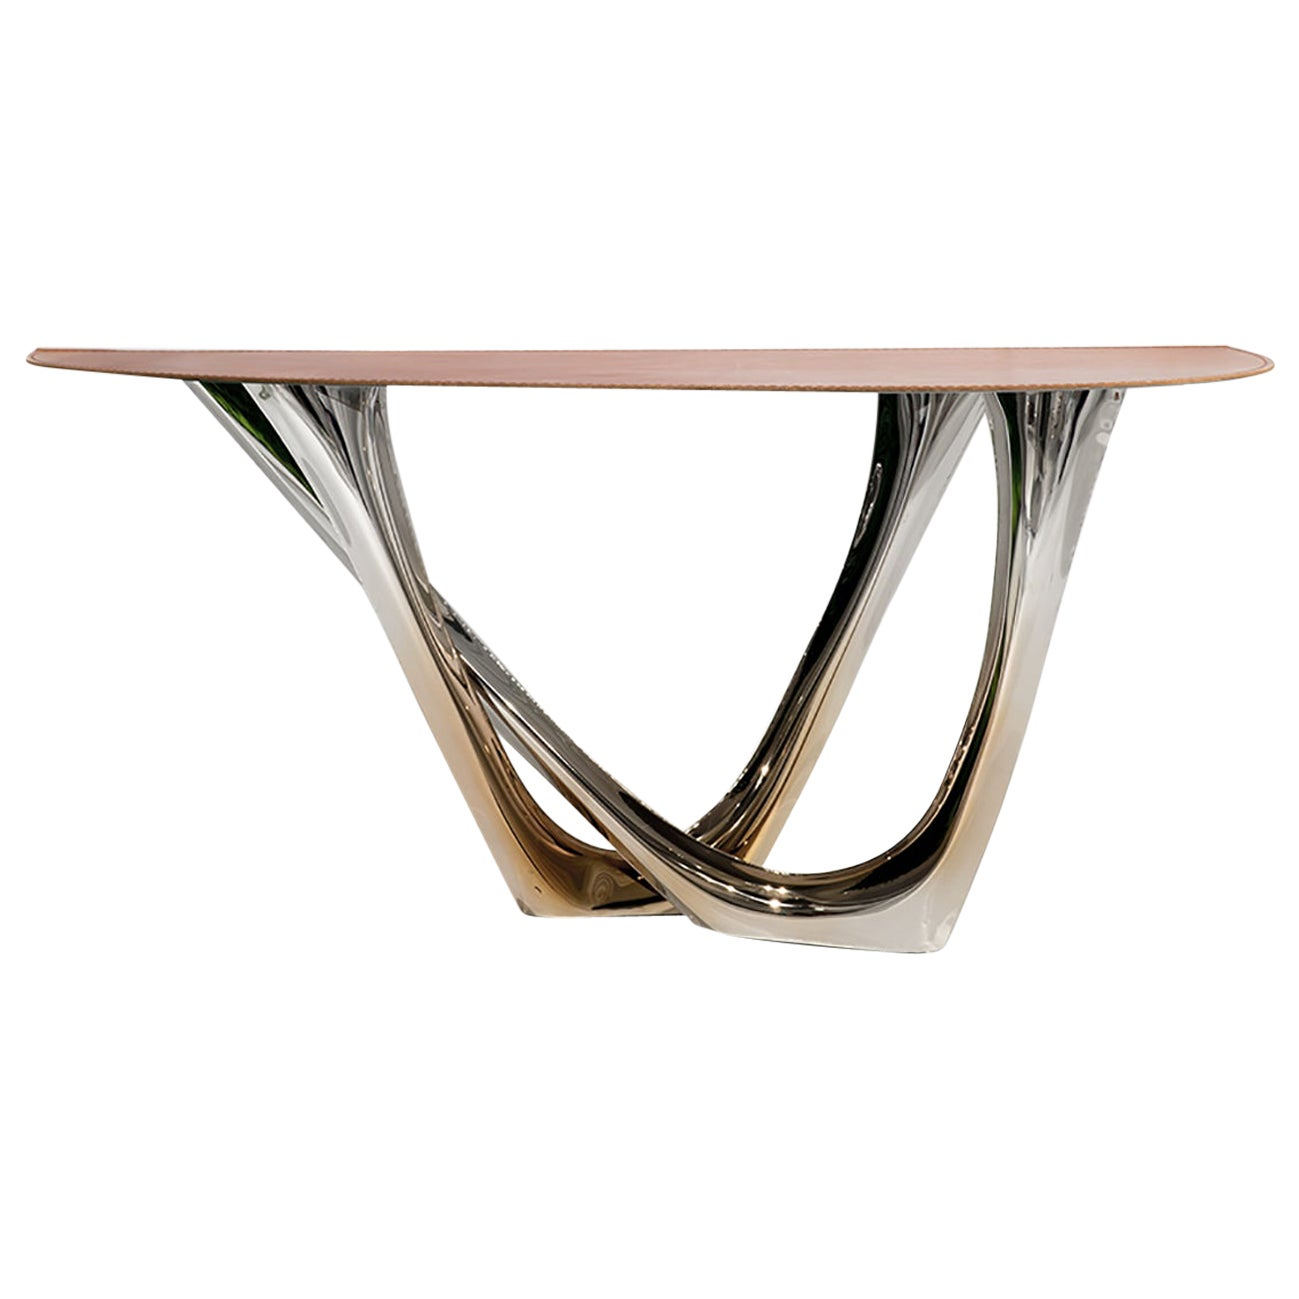 G-Console Duo by Zieta Prozessdesign, Stainless Steel and Leather